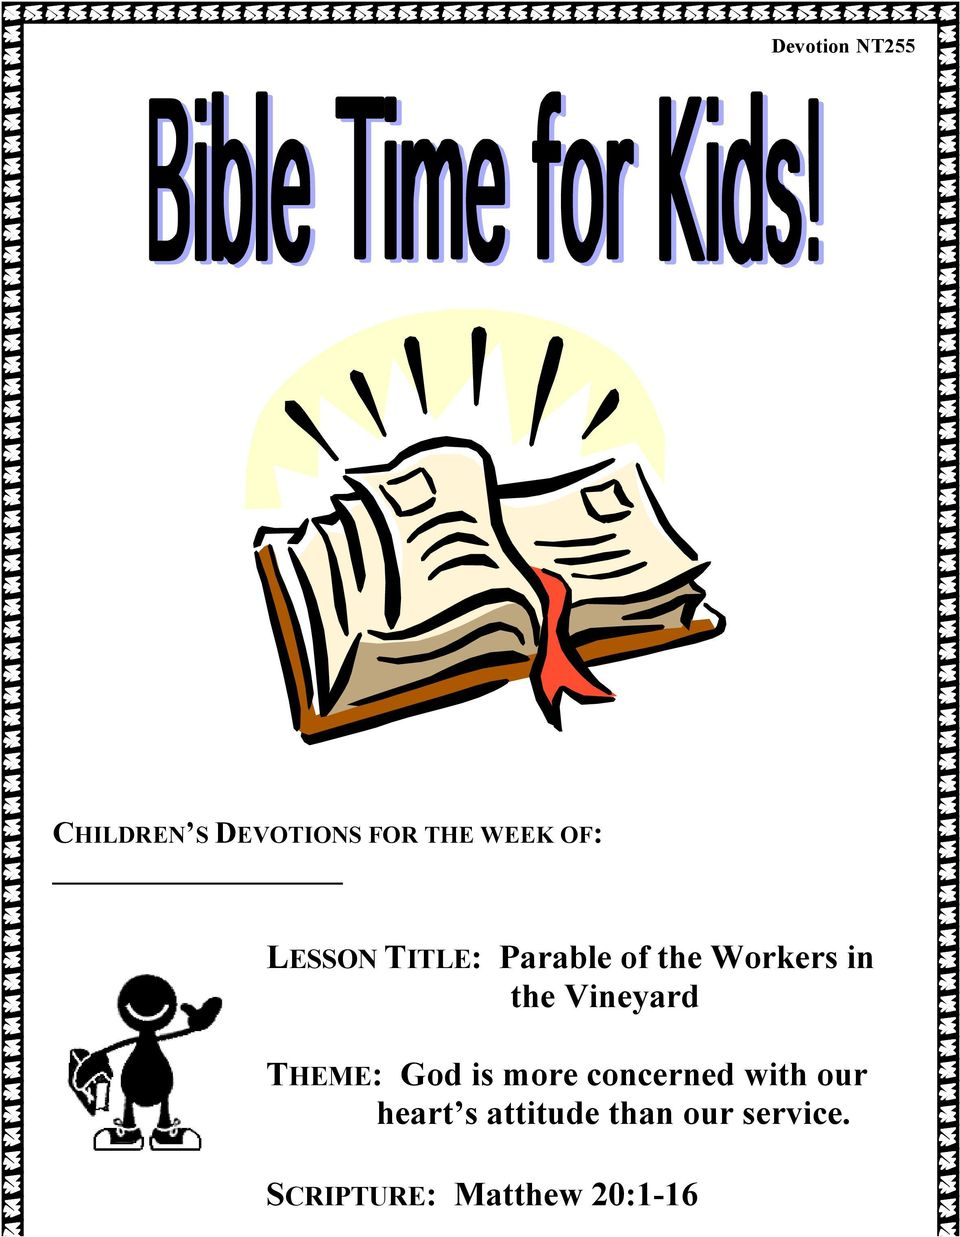 Vineyard THEME: God is more concerned with our